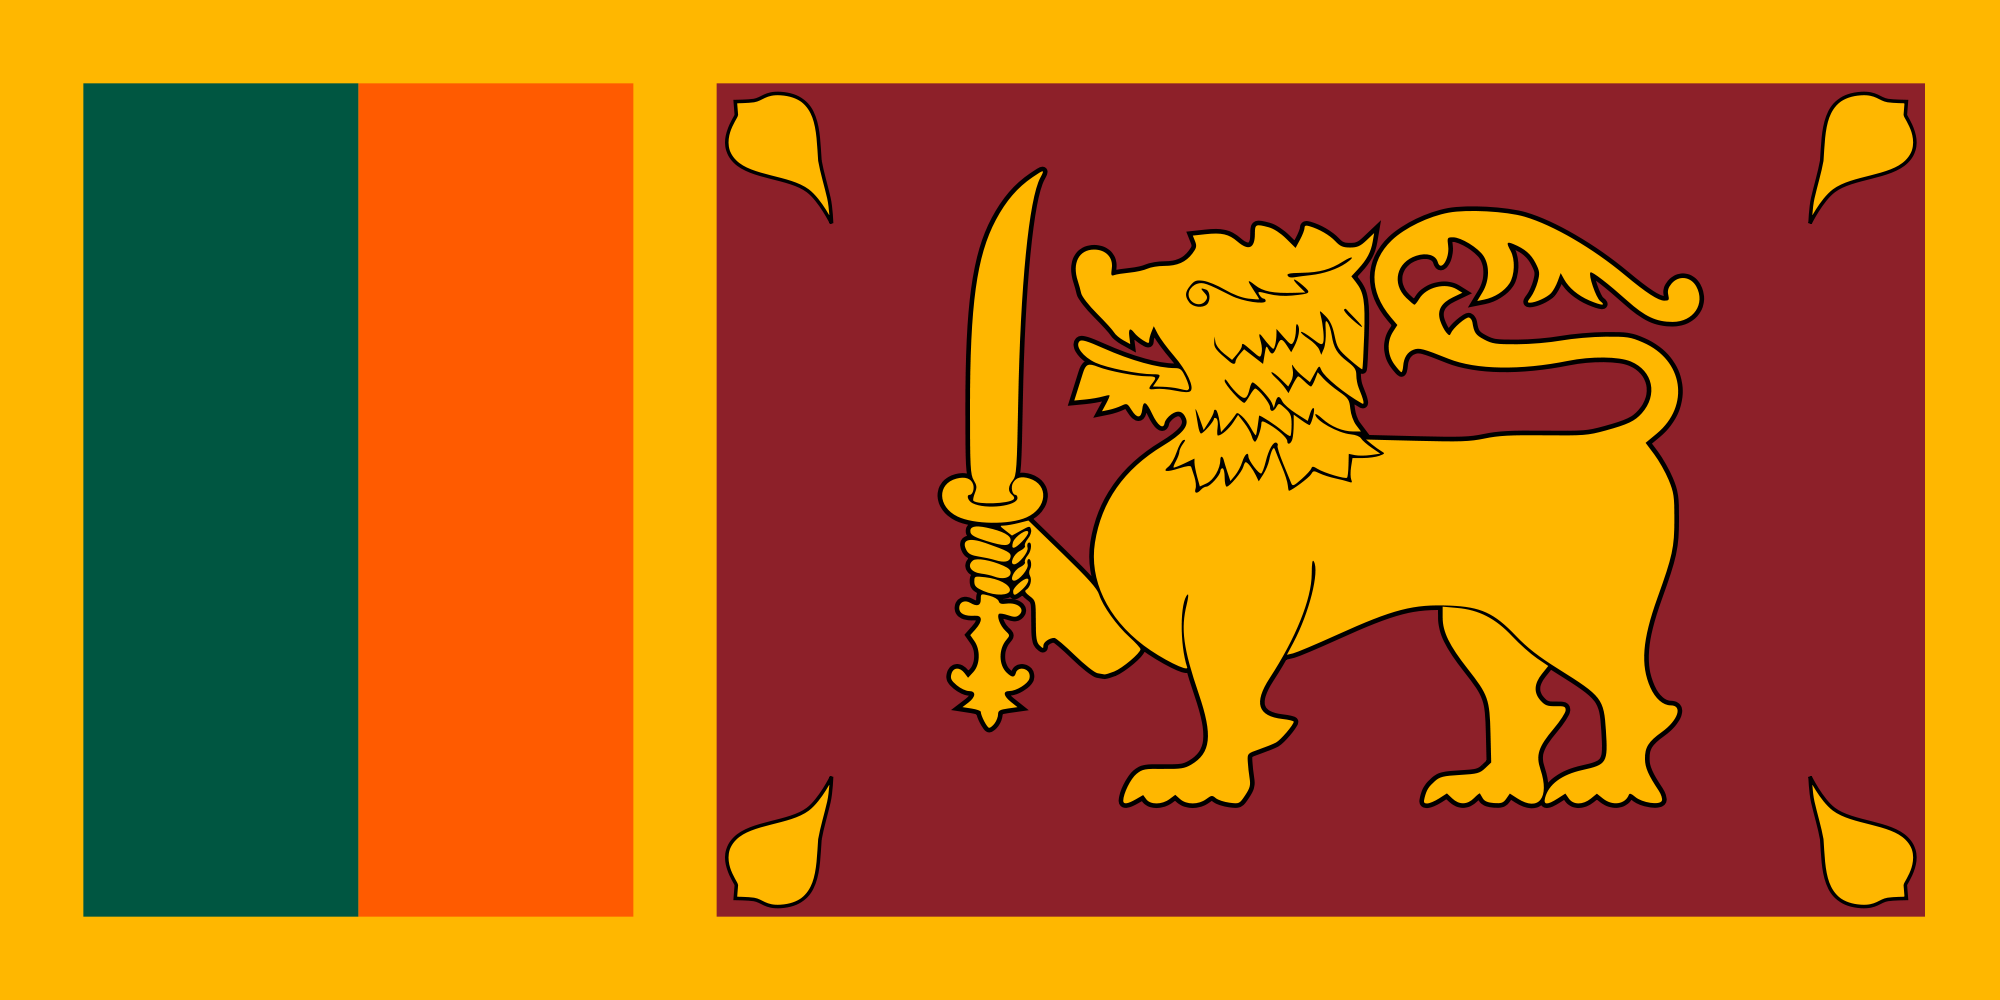 Sri Lanka Country Flag Sri Lanka Flag Sri Lankan Flag Flags Of